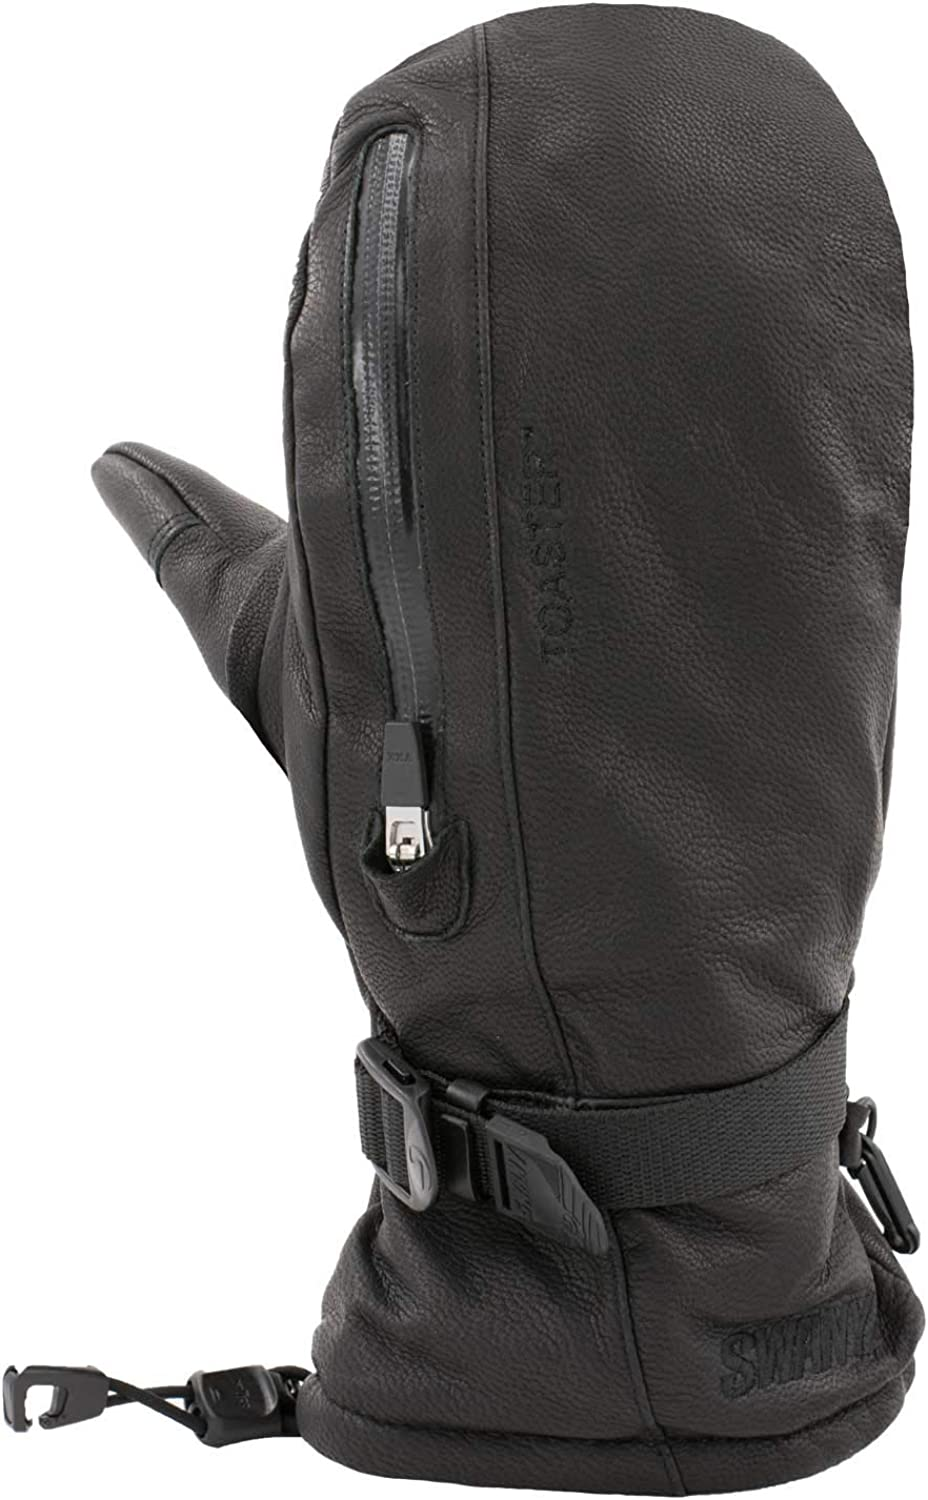 Swany Legend Touch Screen Mittens - Men's - Black